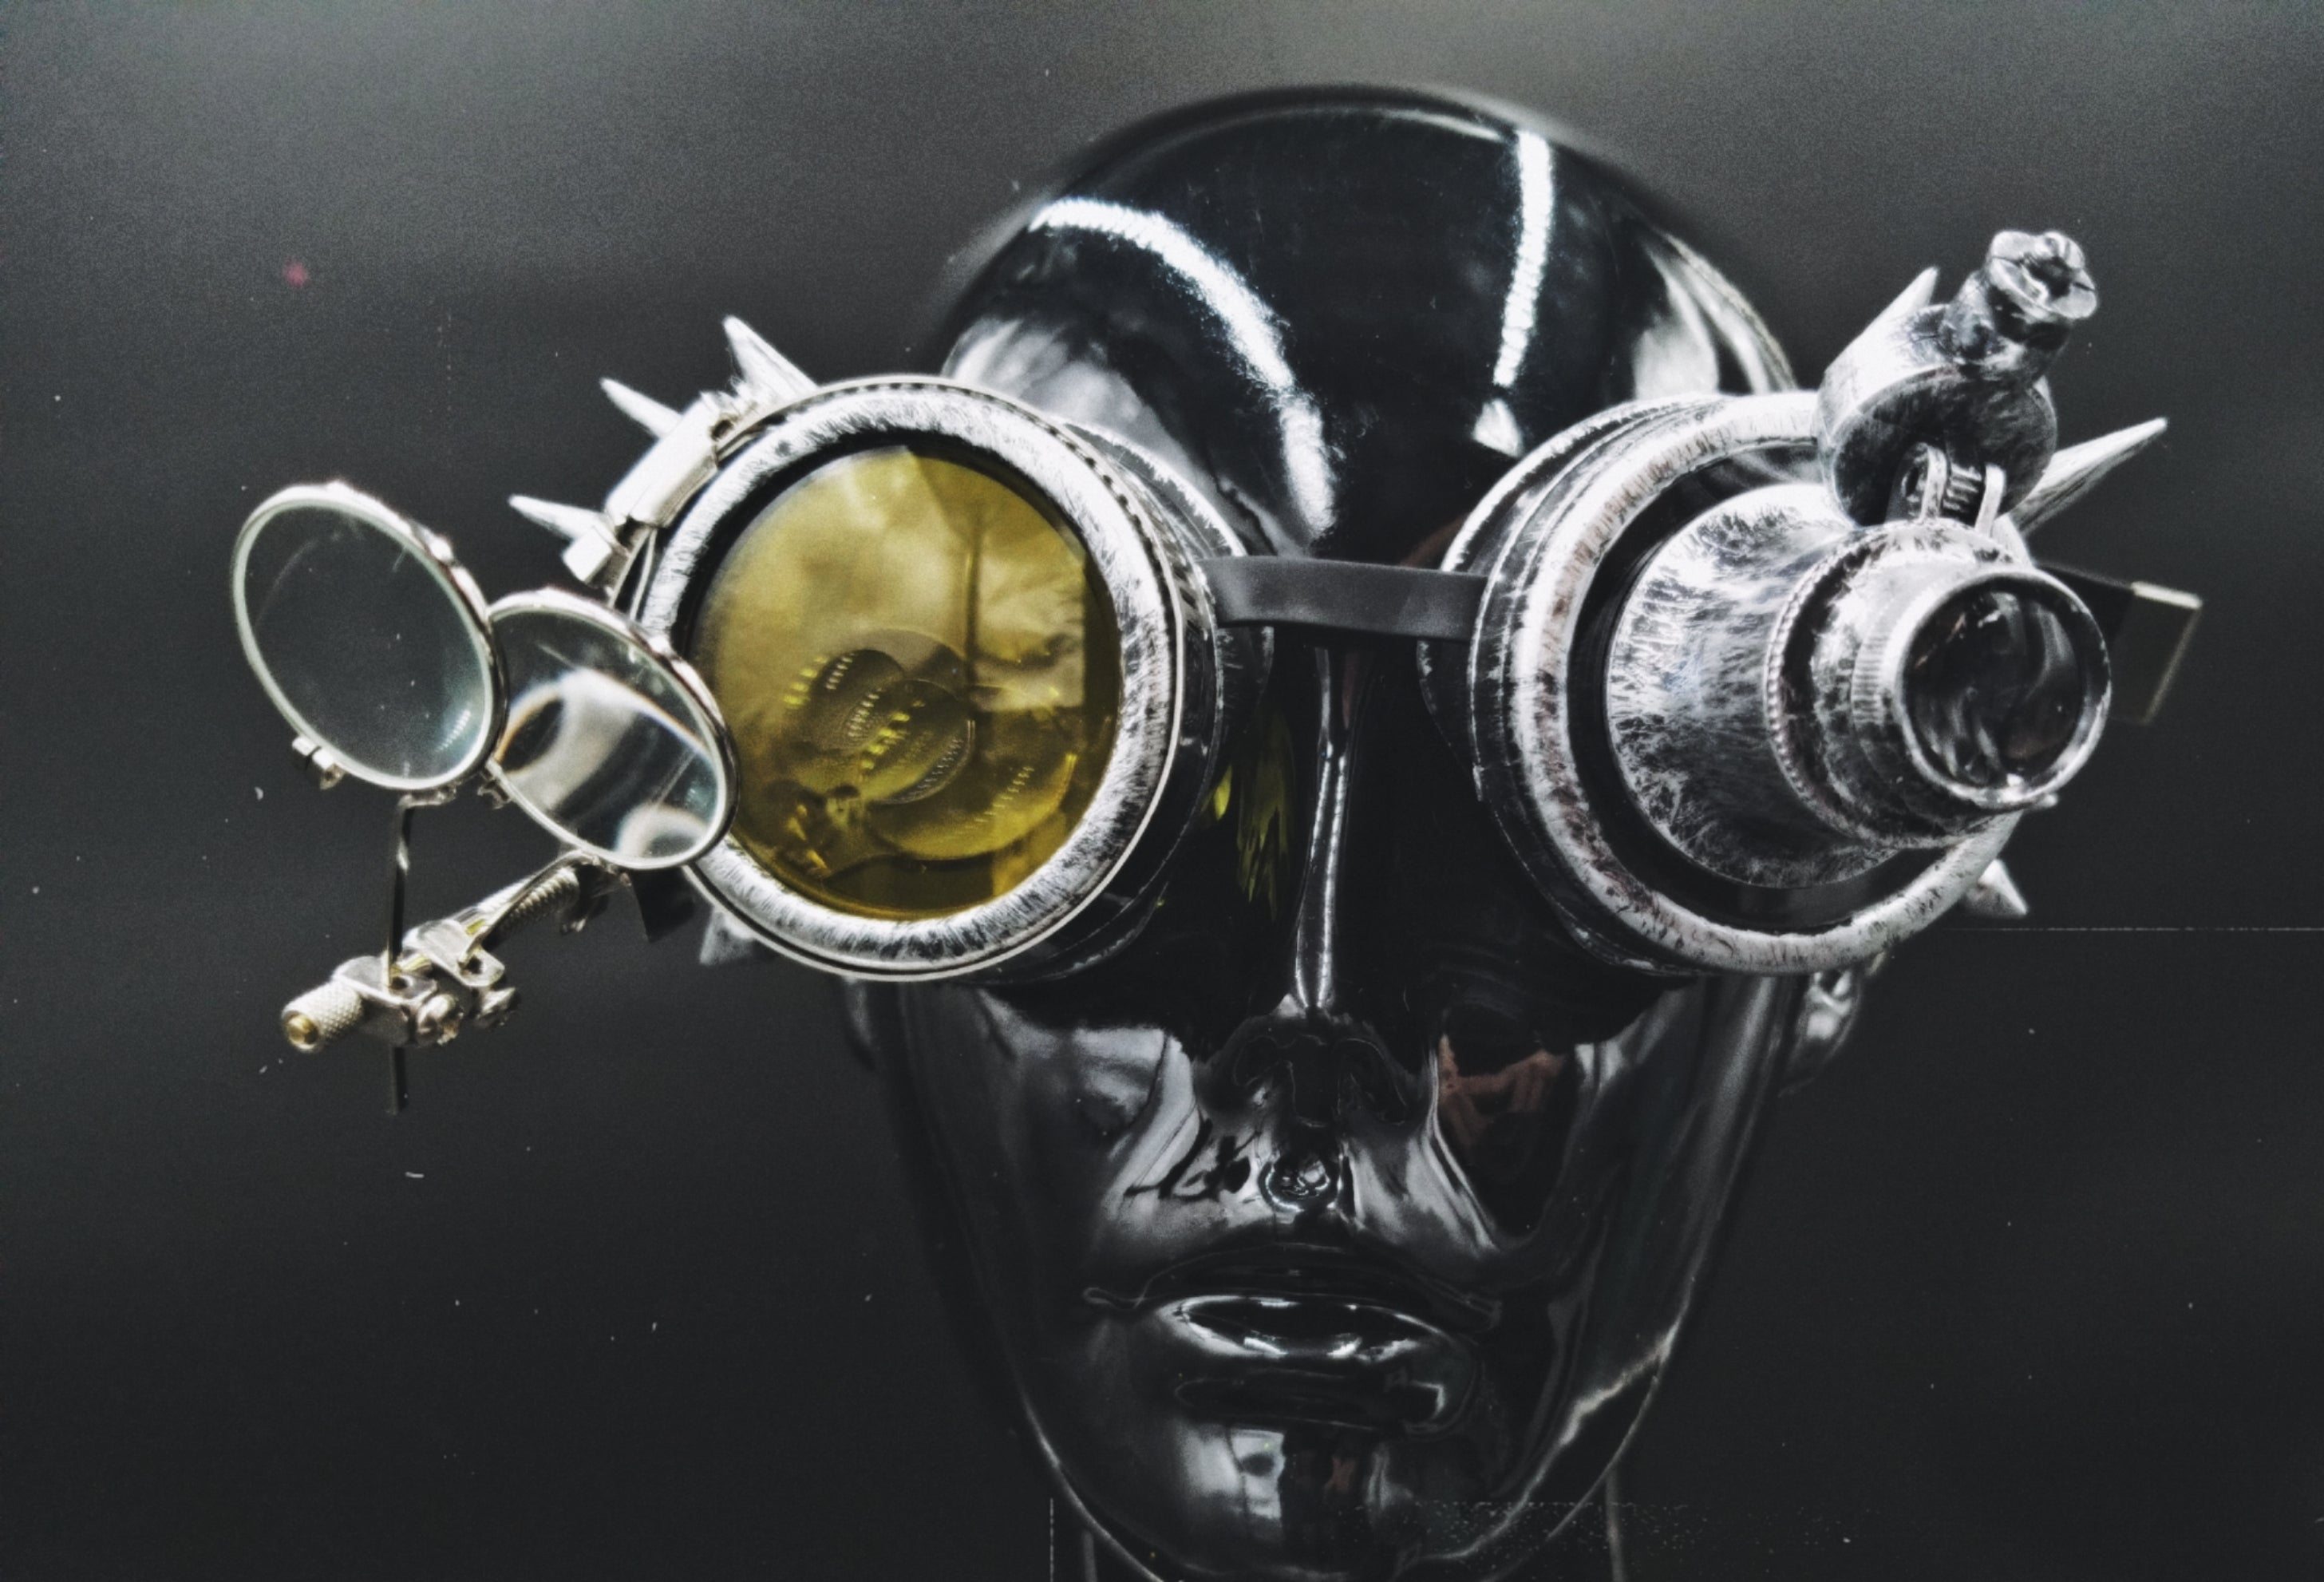 Goggles with Light and Magnifiers